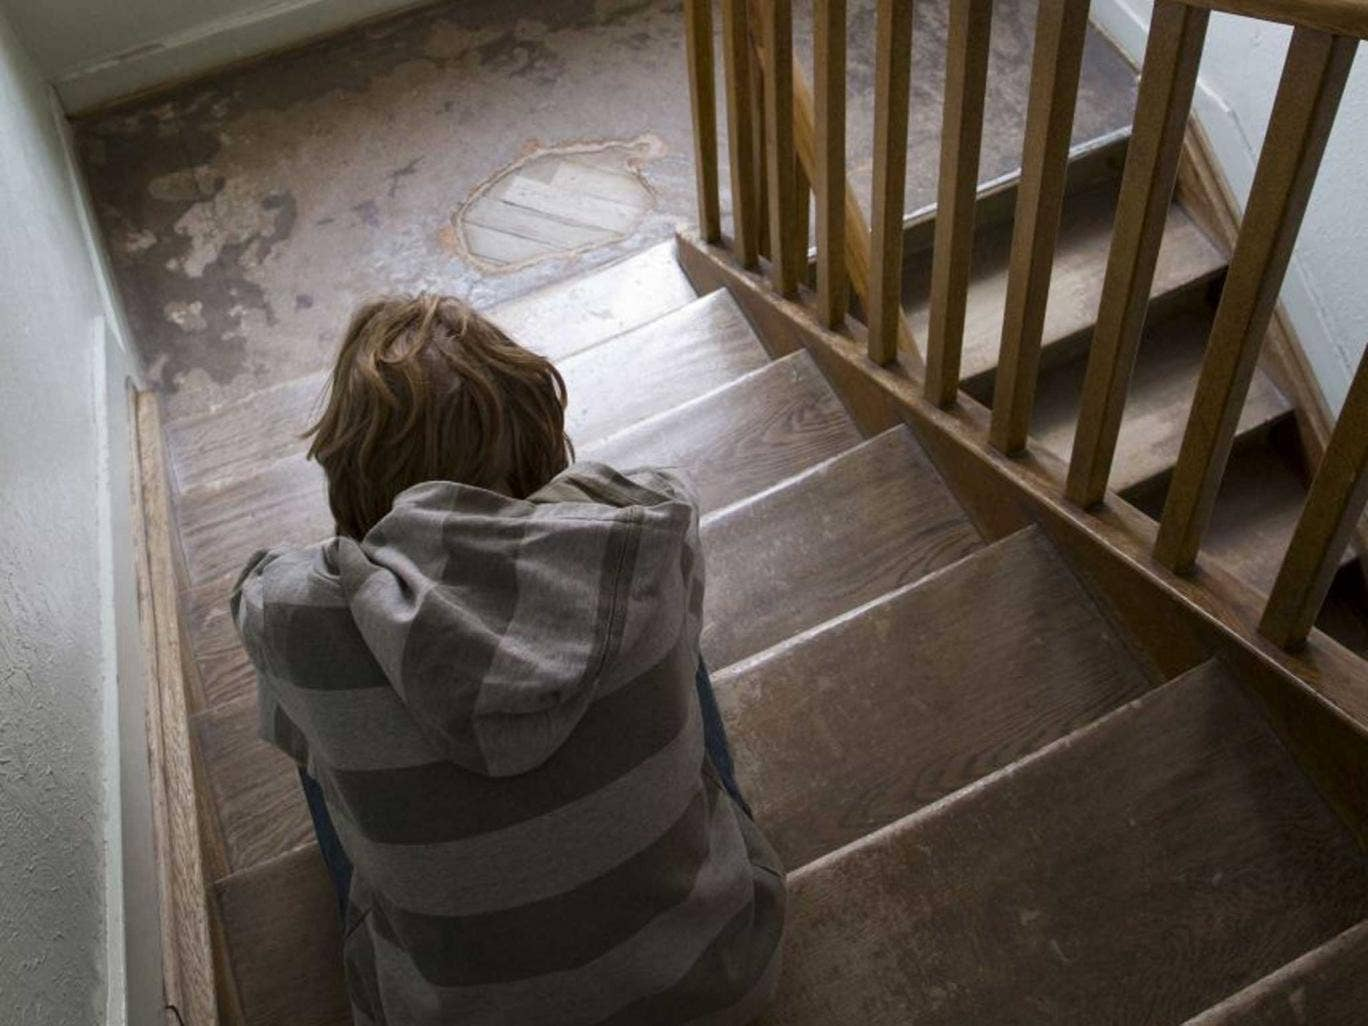 Two-thirds of rescued children go missing once they are back in care homes